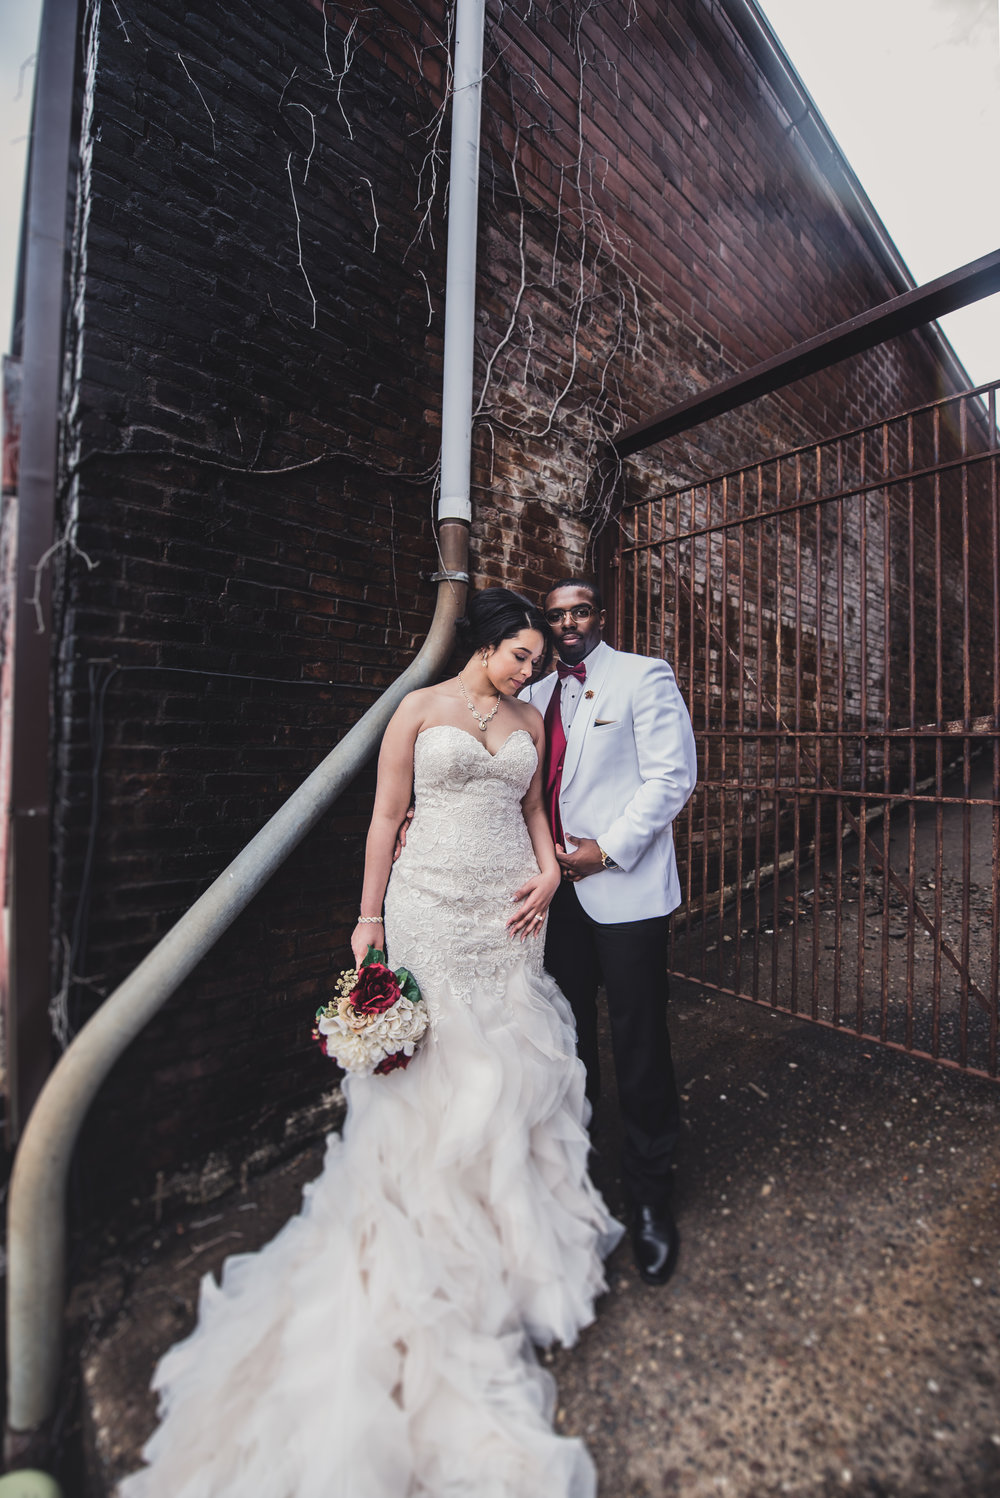 Burlington Iowa Wedding Midwest Photographer Melissa Cervantes _ Chantelle and Isaiah 610a.jpg